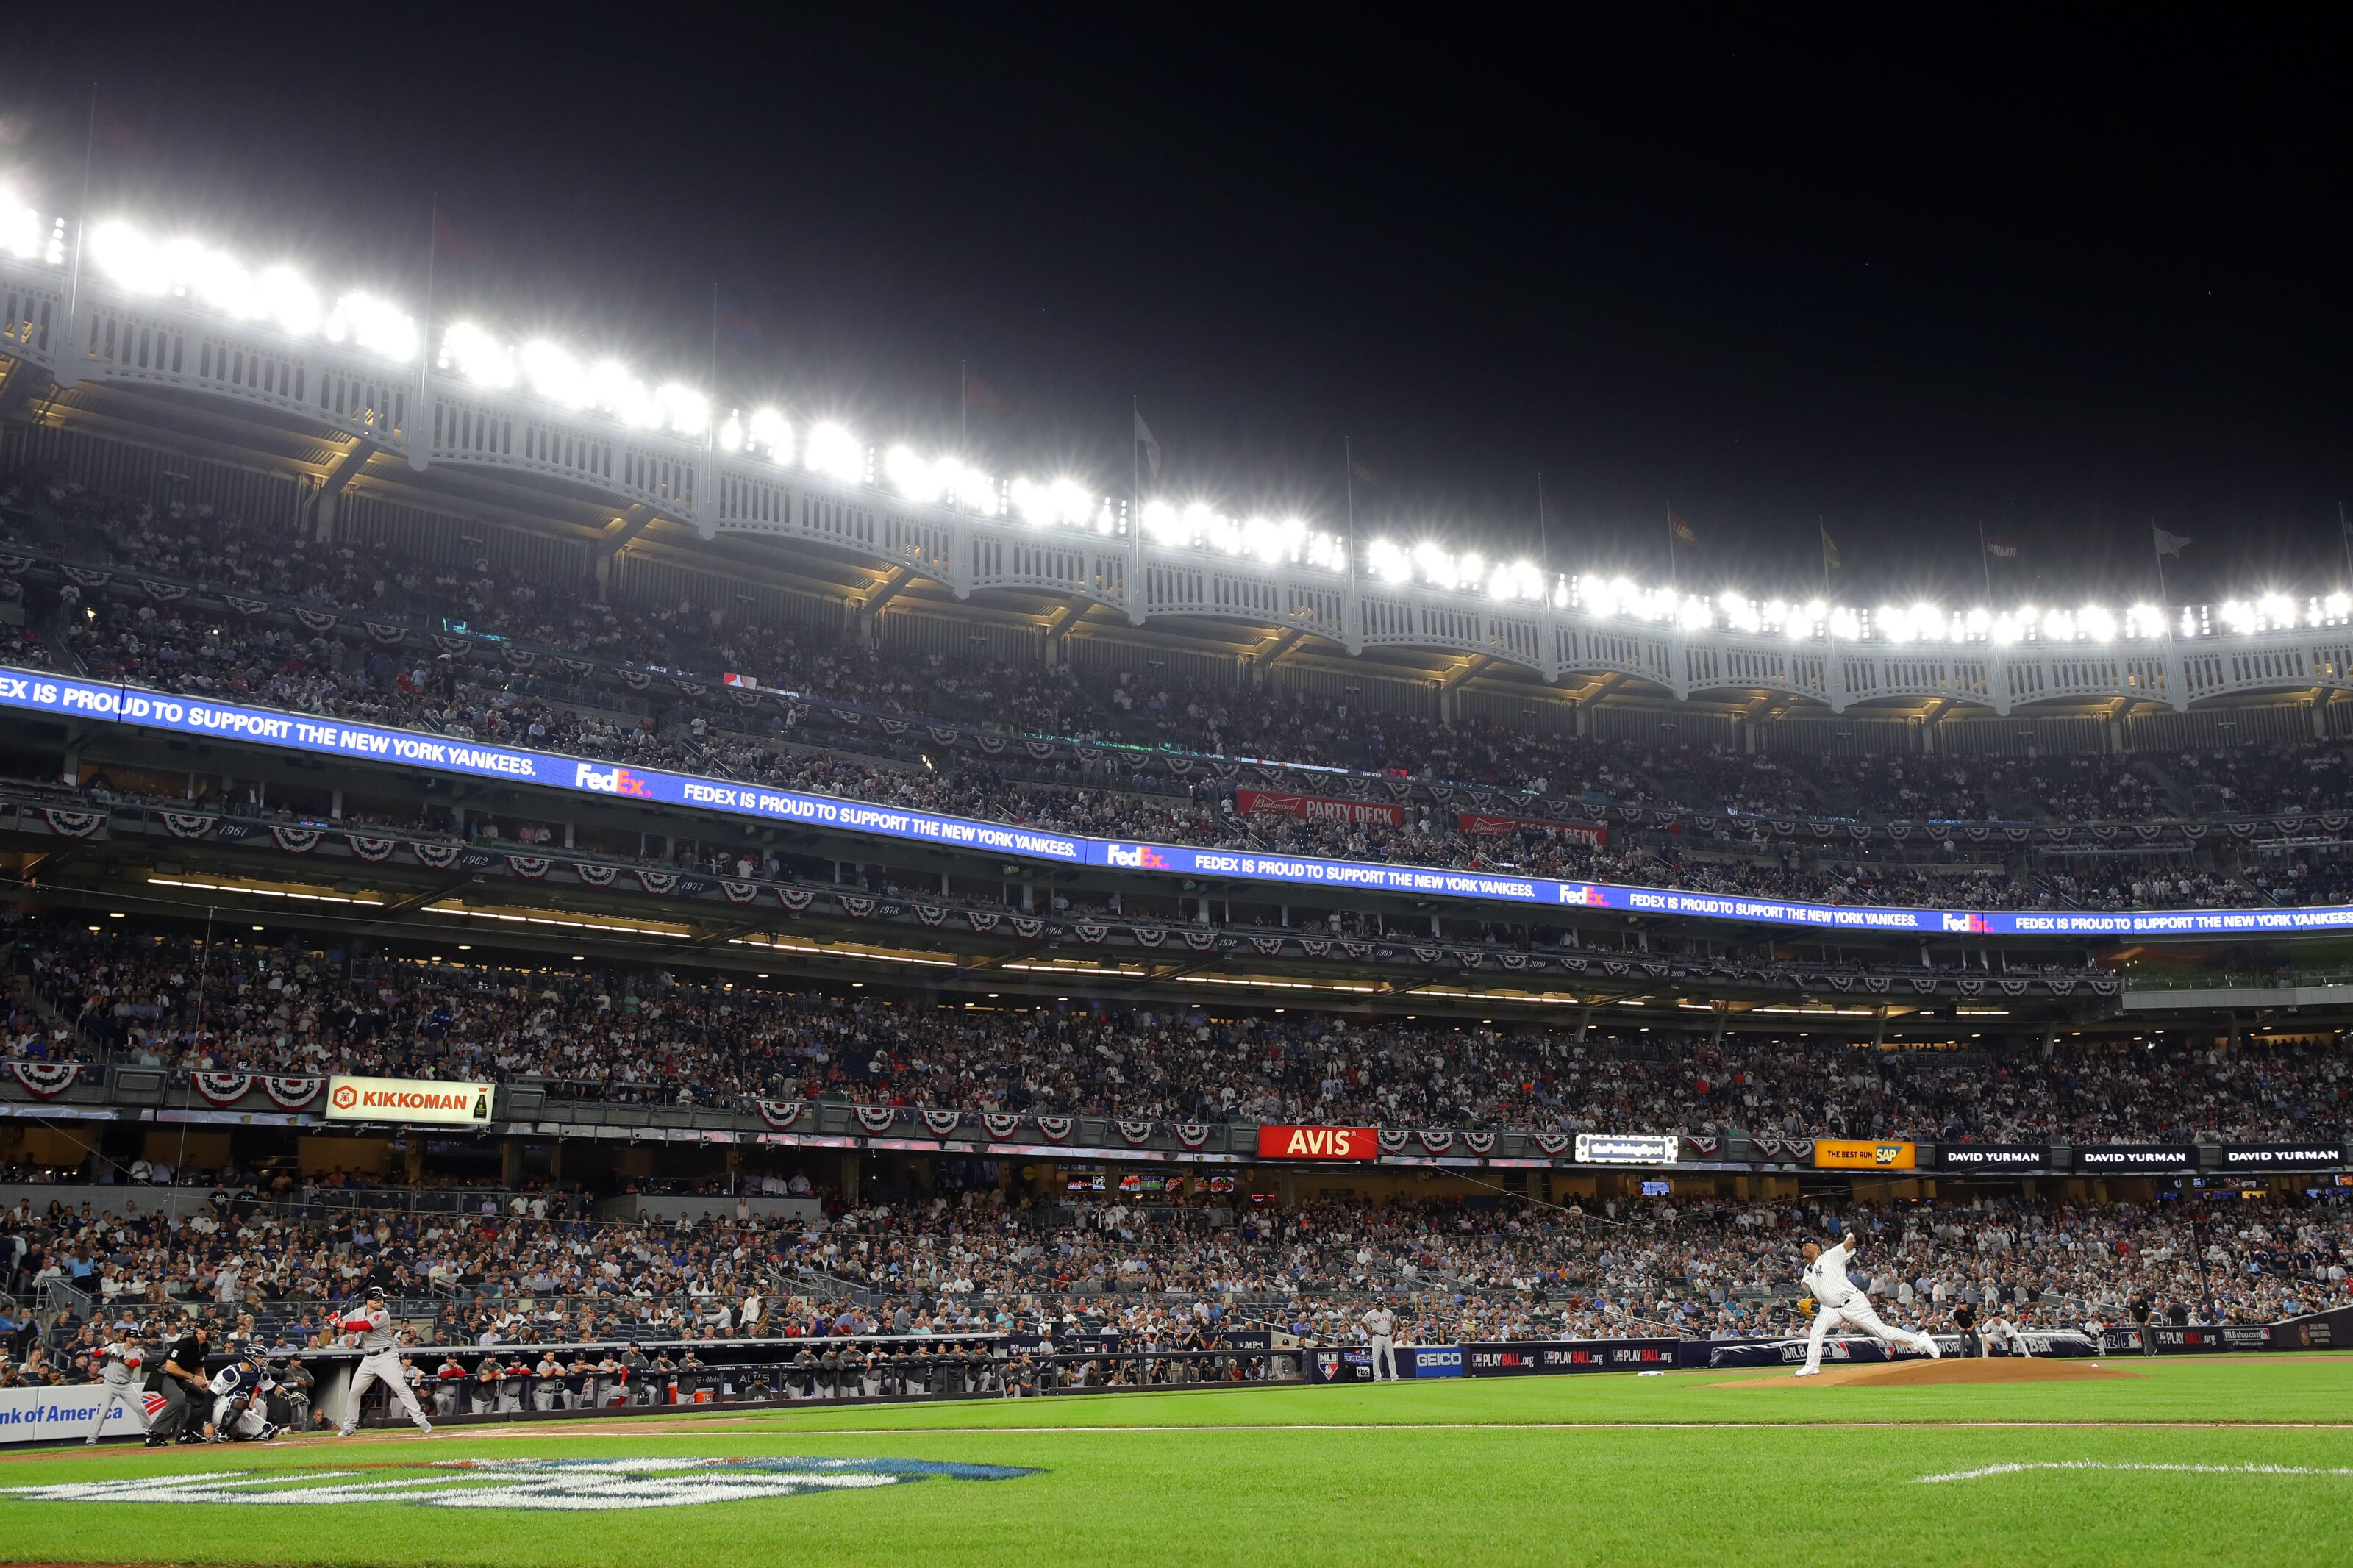 The biggest superstition or ritual for each MLB team